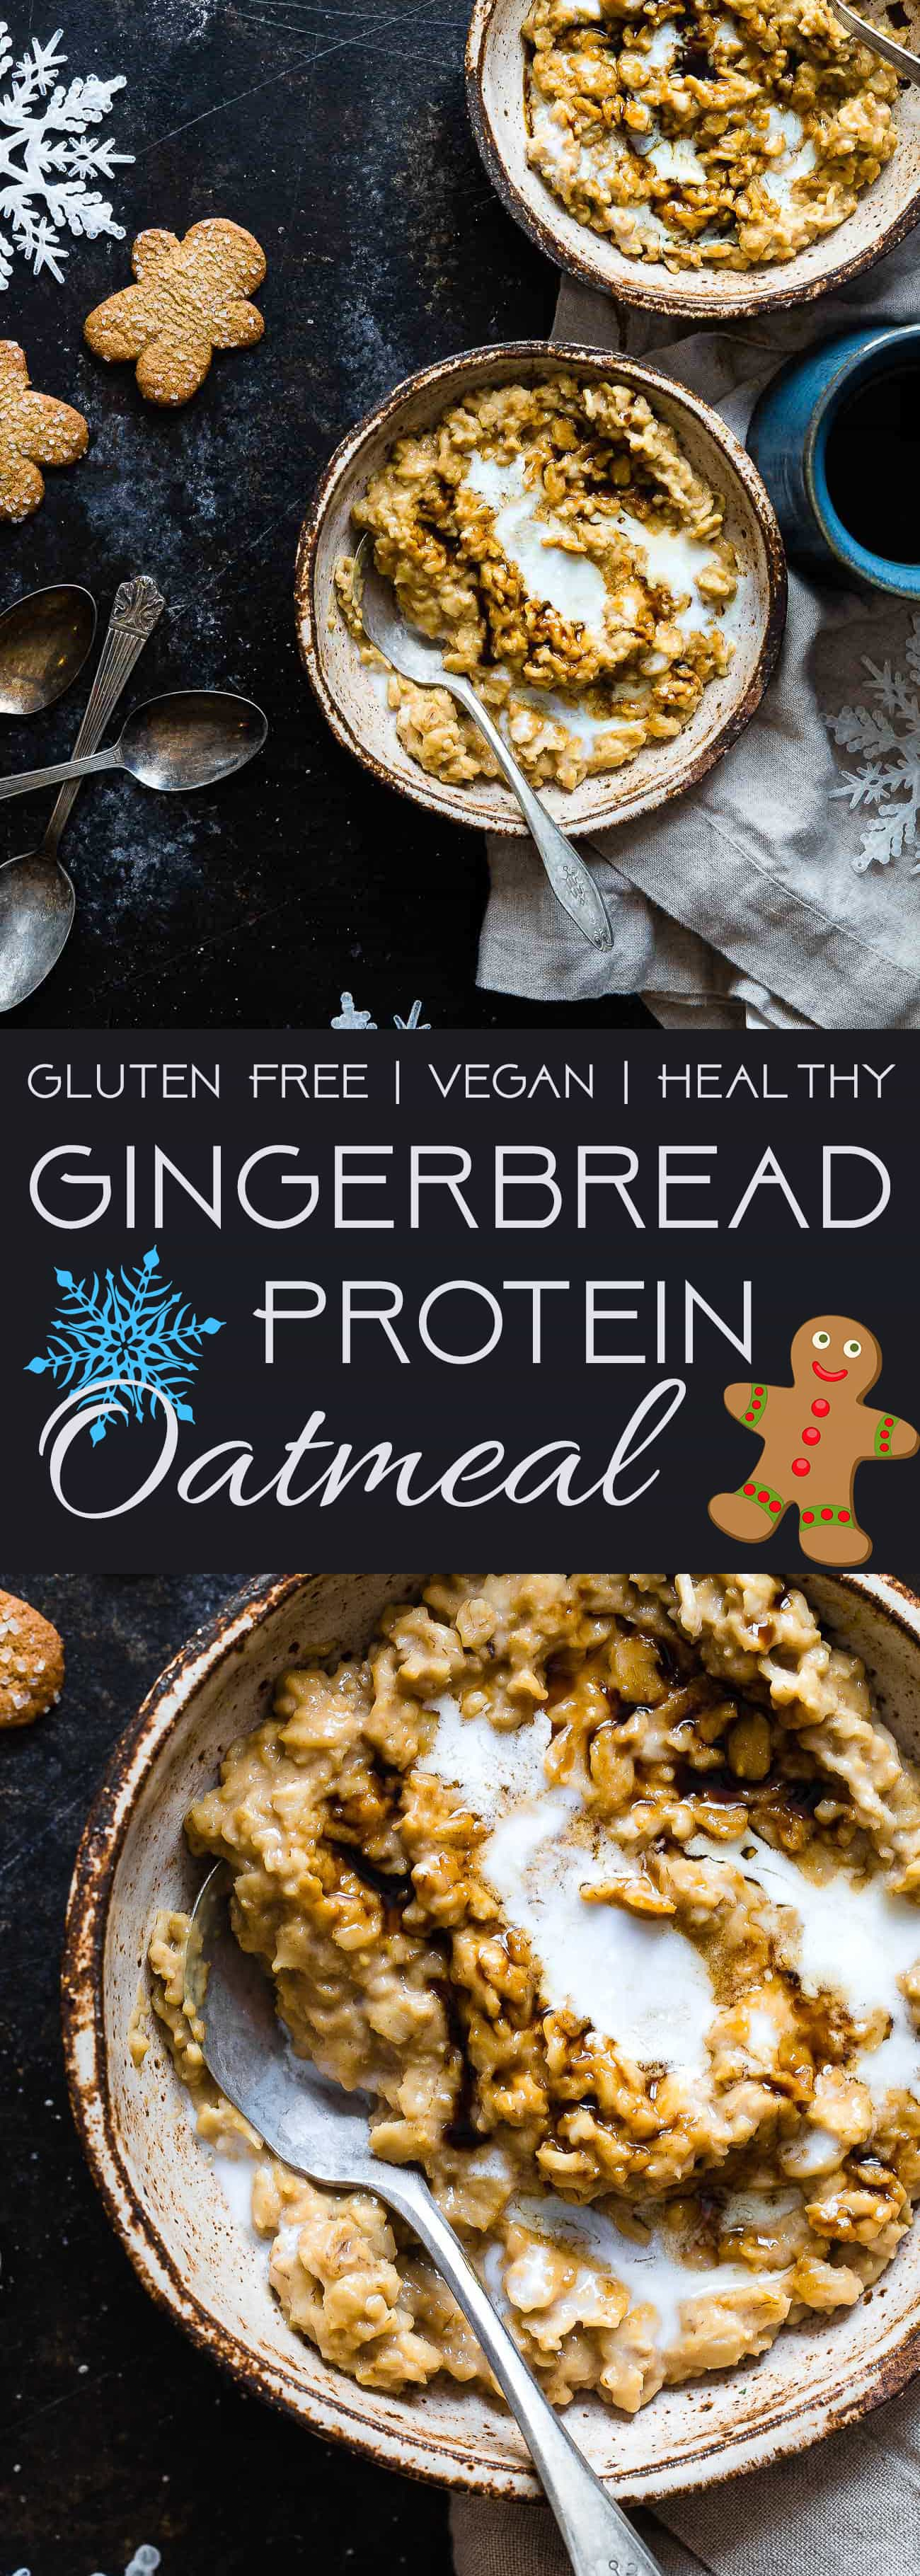 Gingerbread Protein Oatmeal - This quick and easy, high protein oatmeal tastes like waking up and eating a gingersnap cookie! It's a healthy, gluten free breakfast for kids and adults and it's ready in only 10 minutes!   Foodfaithfitness.com   @FoodFaithFit   healthy protein oatmeal. whey protein oatmeal. proats. hot protein oatmeal. protein powder oatmeal. vanilla protein oatmeal. high protein breakfast recipes. kid friendly breakfast recipes. quick protein oatmeal. cinnamon protein oatmeal. healthy oatmeal recipes.